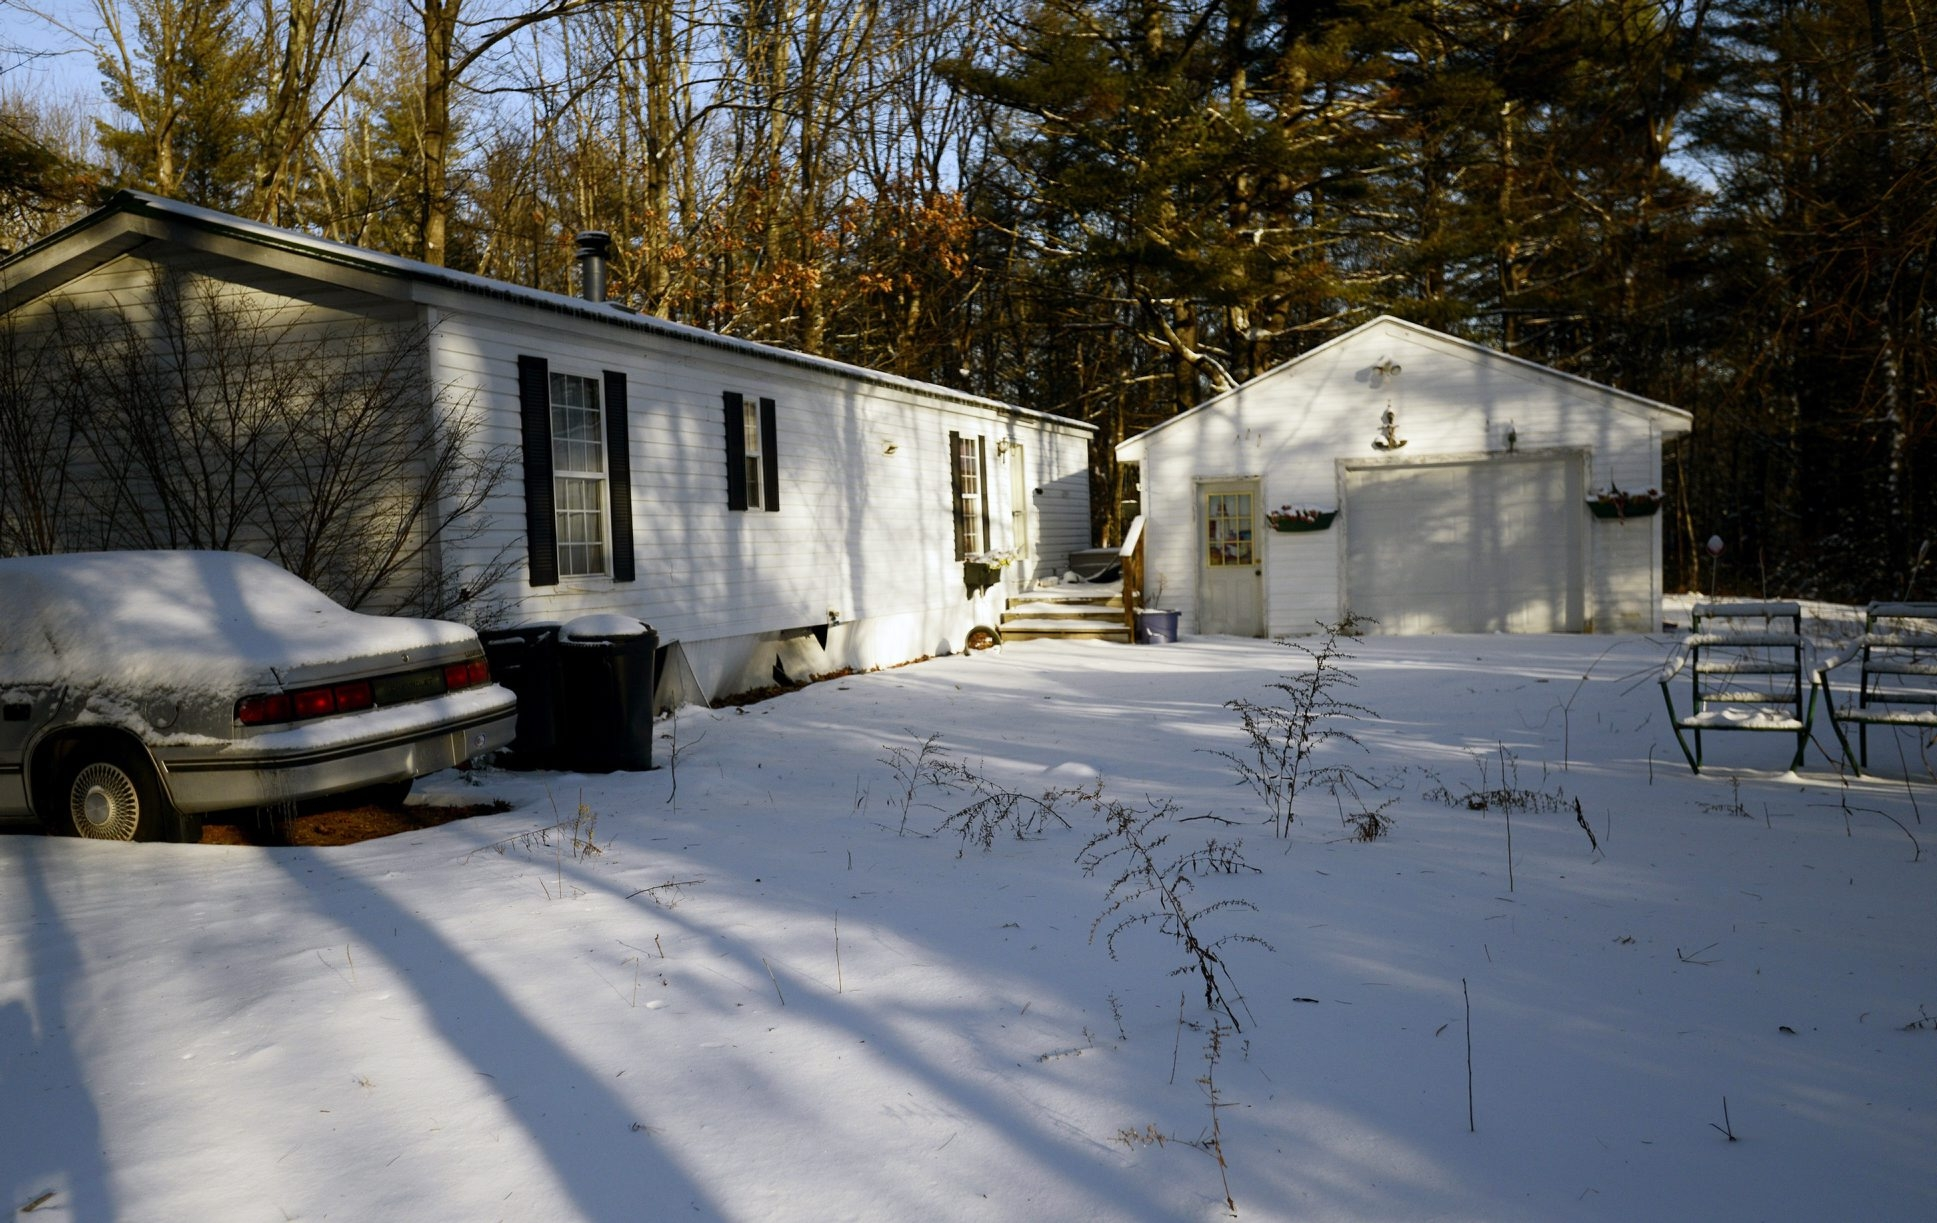 Atkins Lane in Wells, Maine, where police found the body of Lucie McNulty, a retired Williamsville music teacher. Police believe McNulty died in the home more than two years ago. (Photo by Shawn Patrick Ouellette/Portland Press Herald)